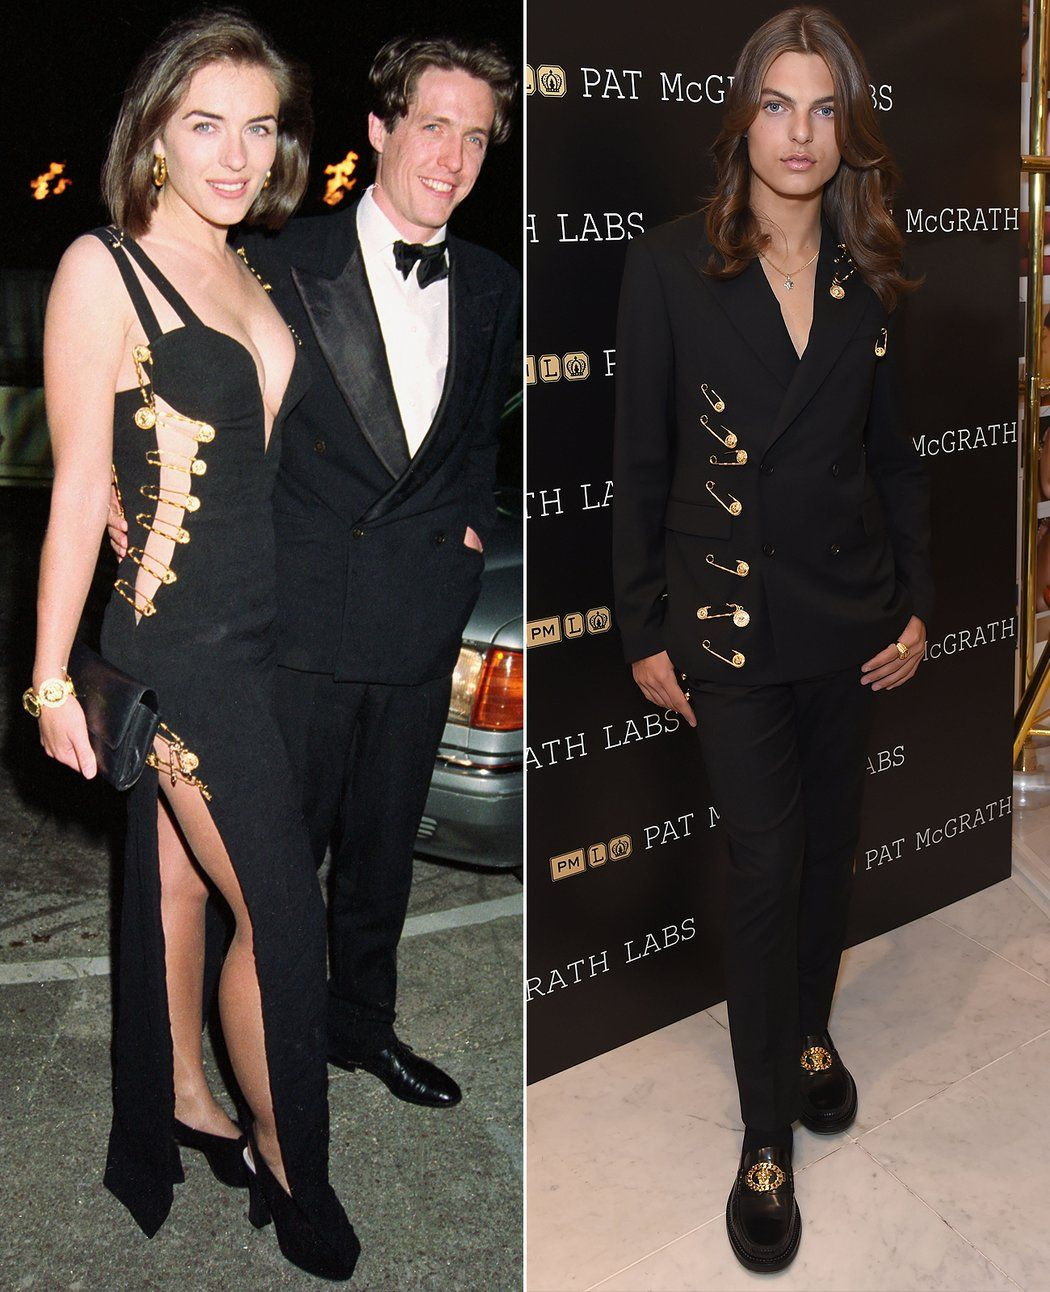 Elizabeth Hurley S Son Damian Recreates Her Iconic Versace Safety Pin Outfit On Red Carpet Elizabeth Hurley Famous Fashion Hurley